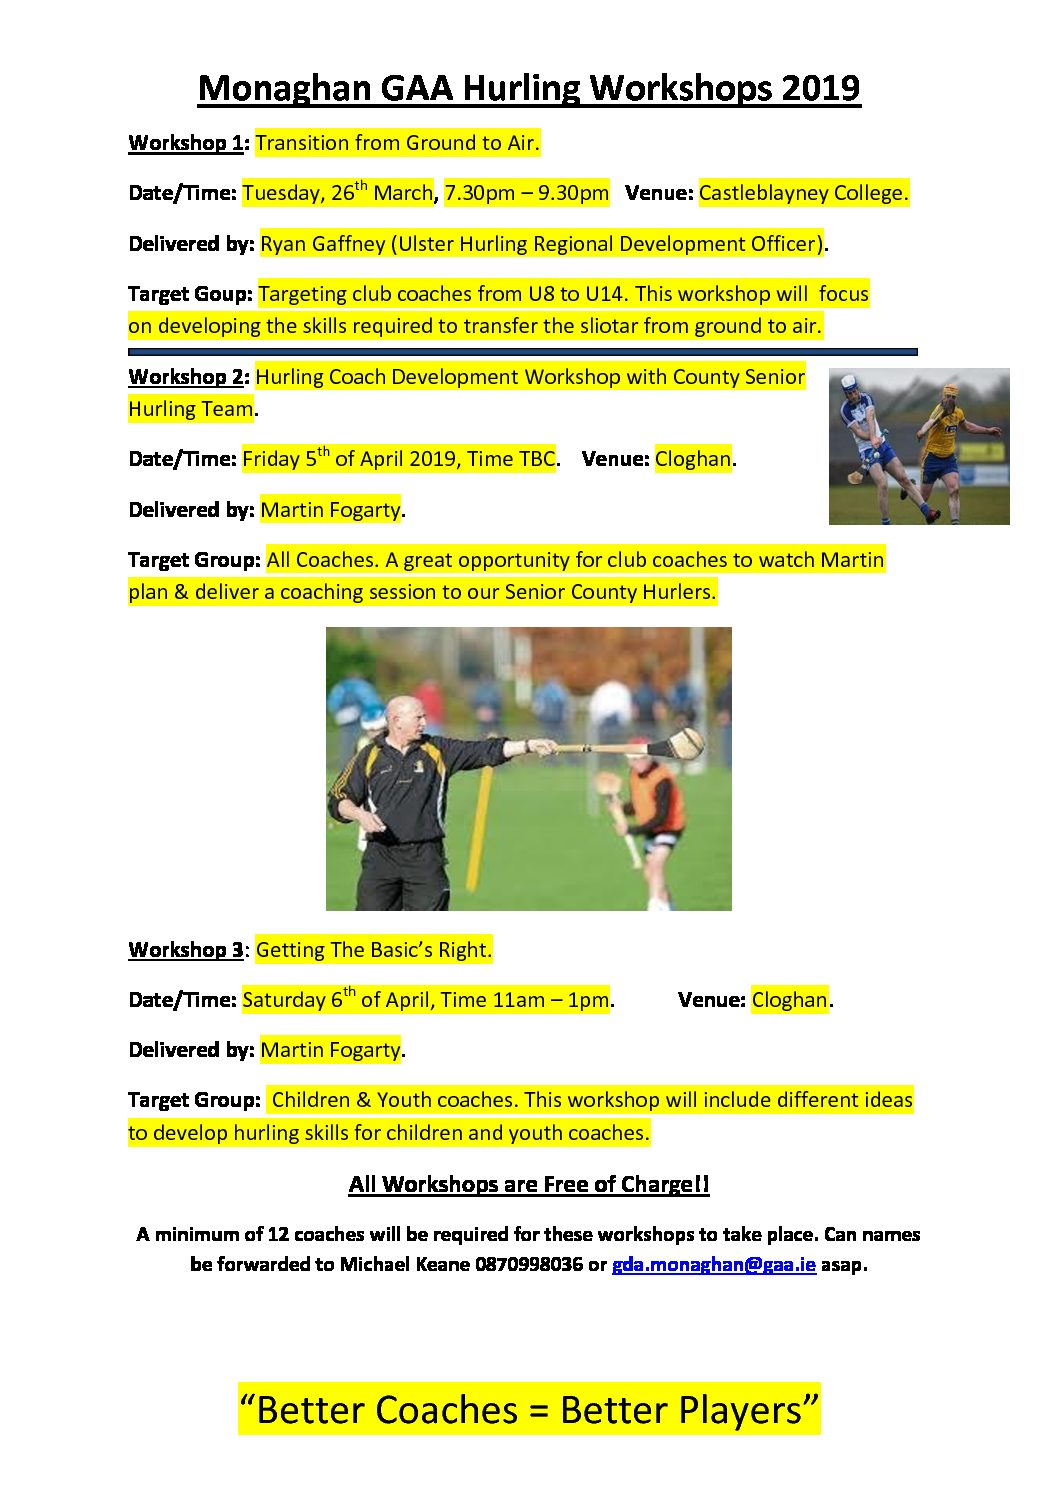 Monaghan GAA Hurling Workshops 2019